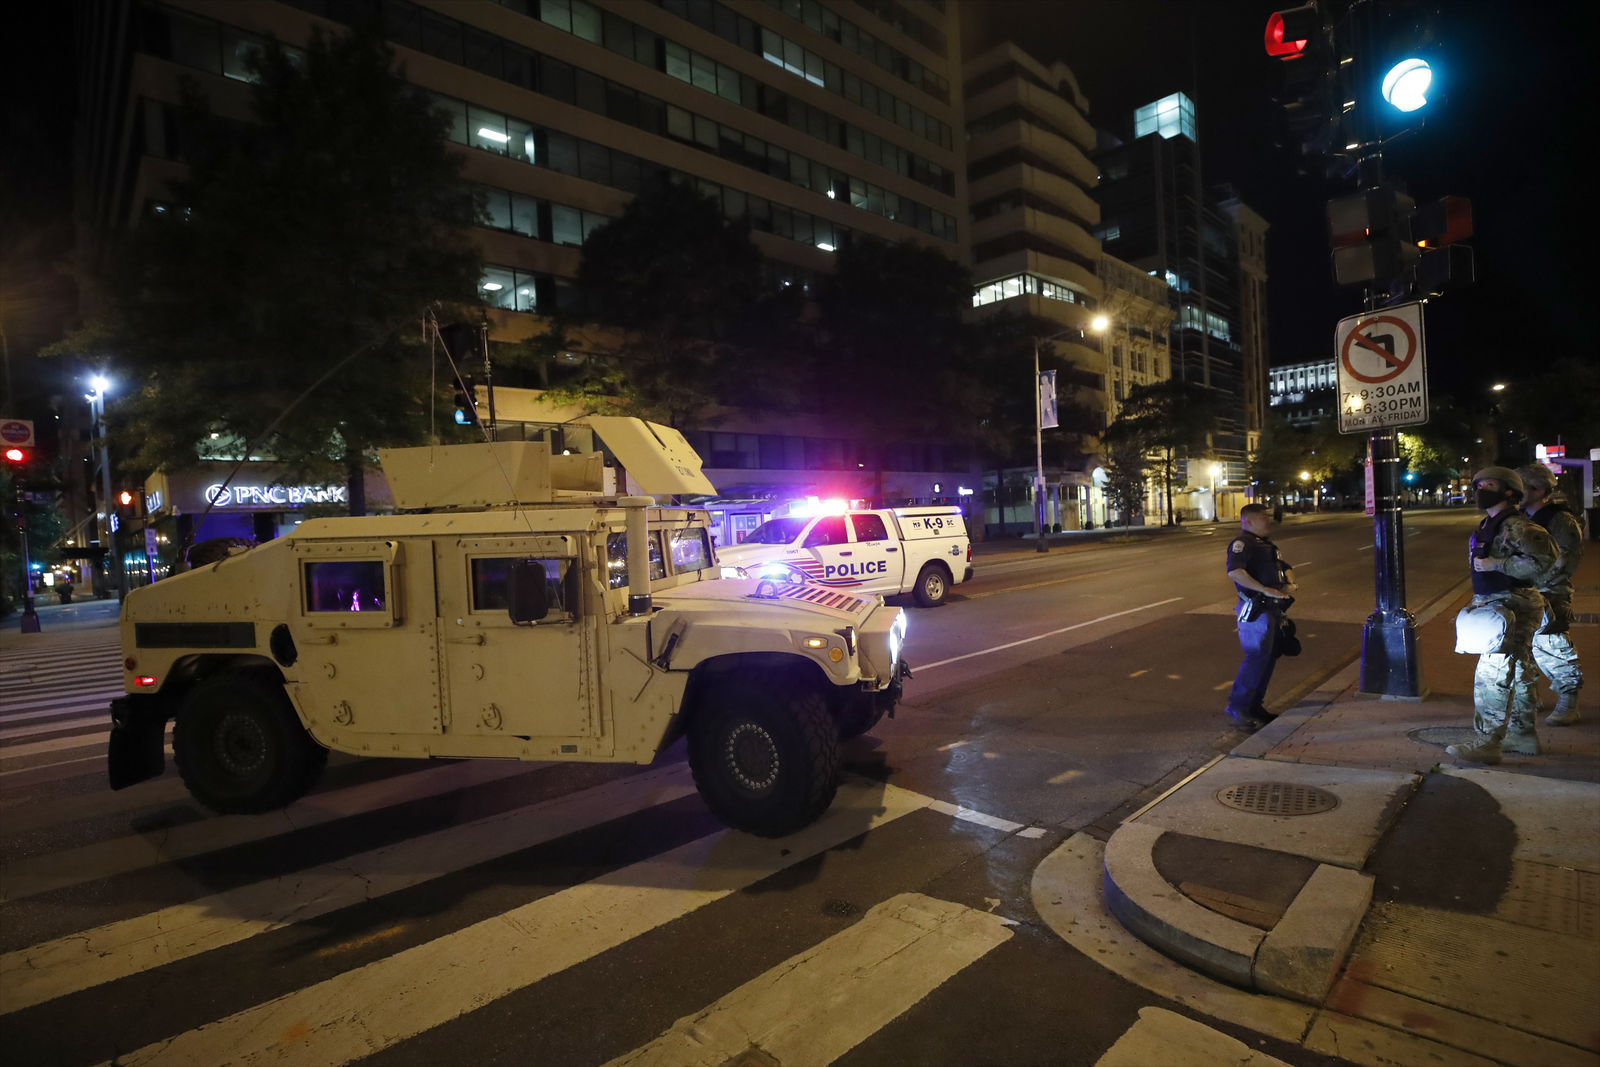 A military Humvee blocks an intersection along K Street in downtown Washington as demonstrators protest the death of George Floyd, Monday, June 1, 2020, in Washington. Floyd died after being restrained by Minneapolis police officers. (AP Photo/Alex Brandon)